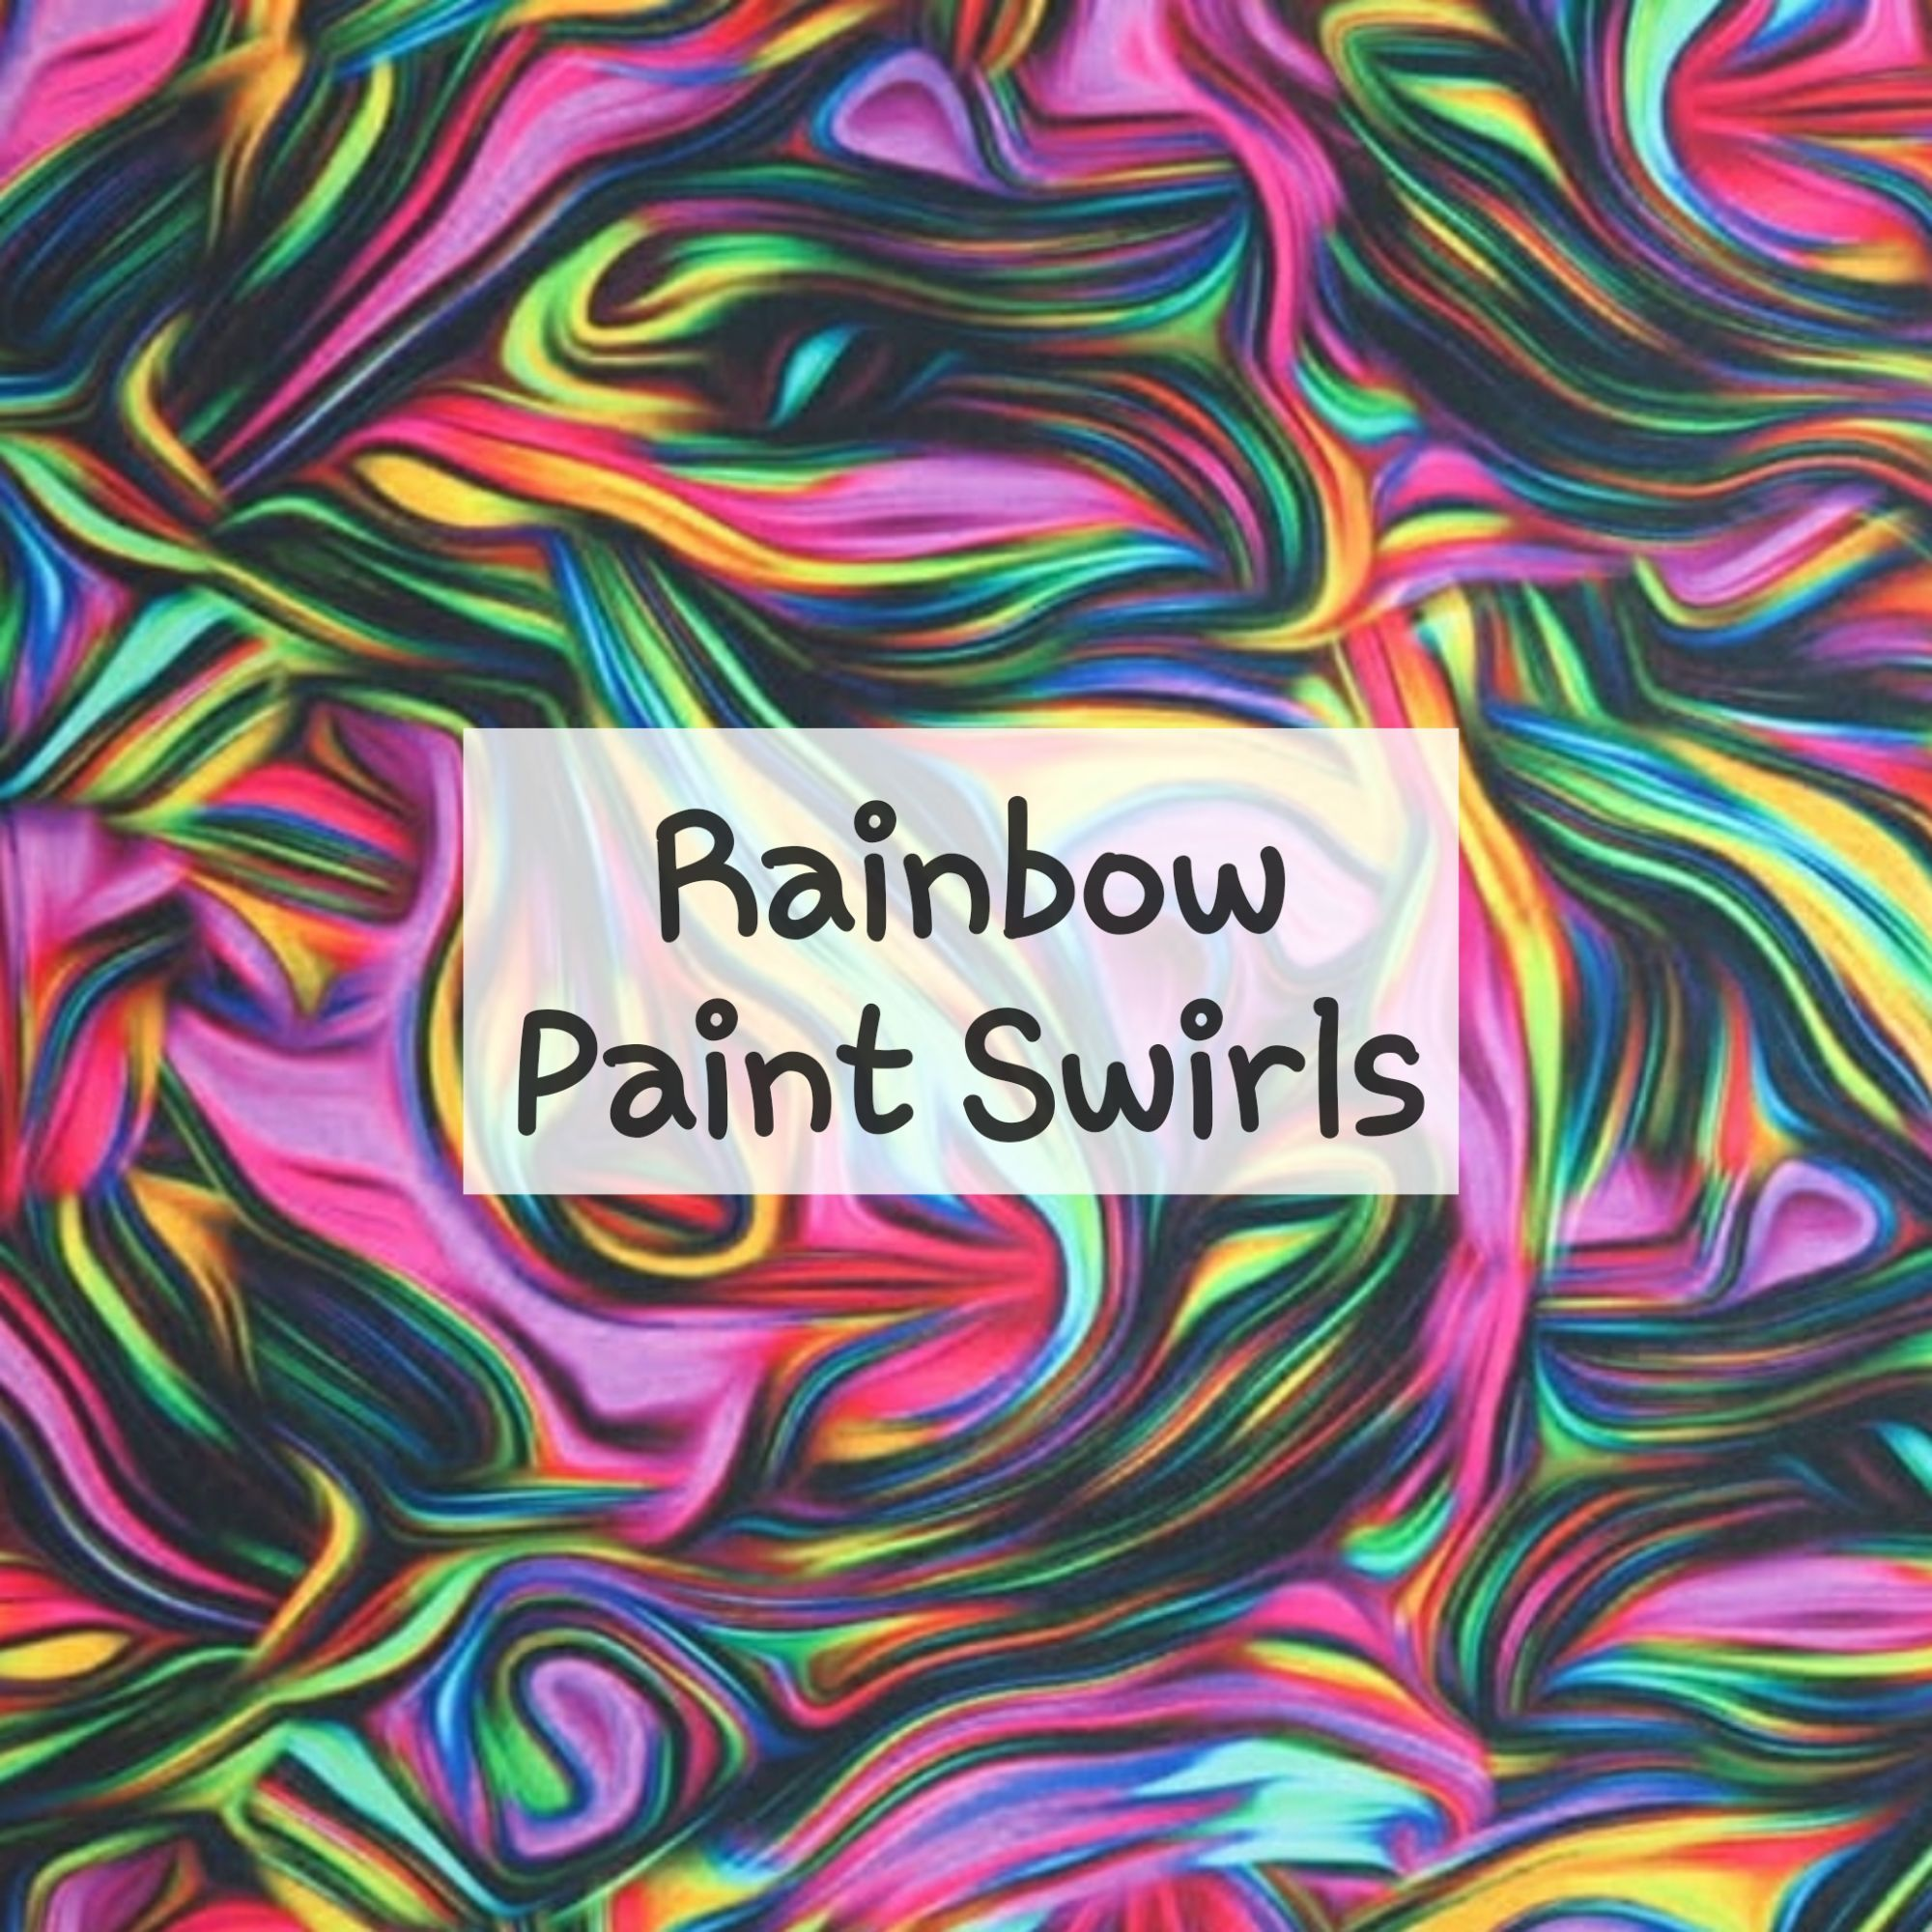 Rainbow Paint Swirls